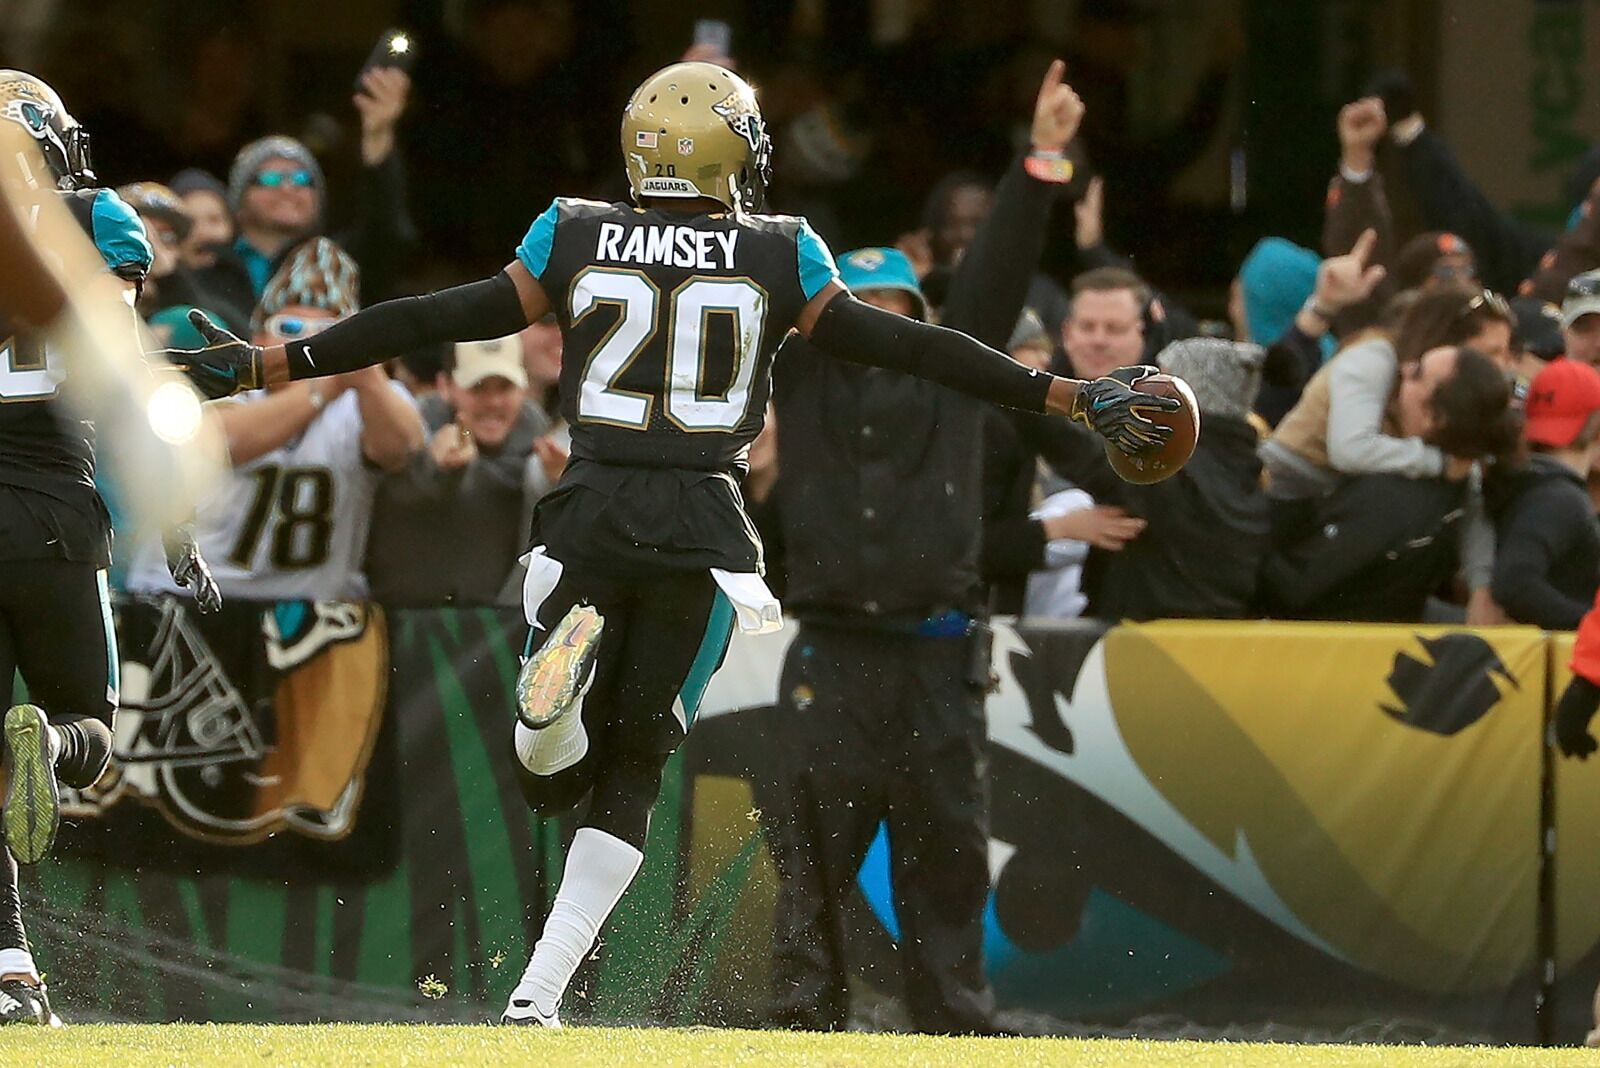 Buffalo Bills: The Jalen Ramsey comments are all part of the game